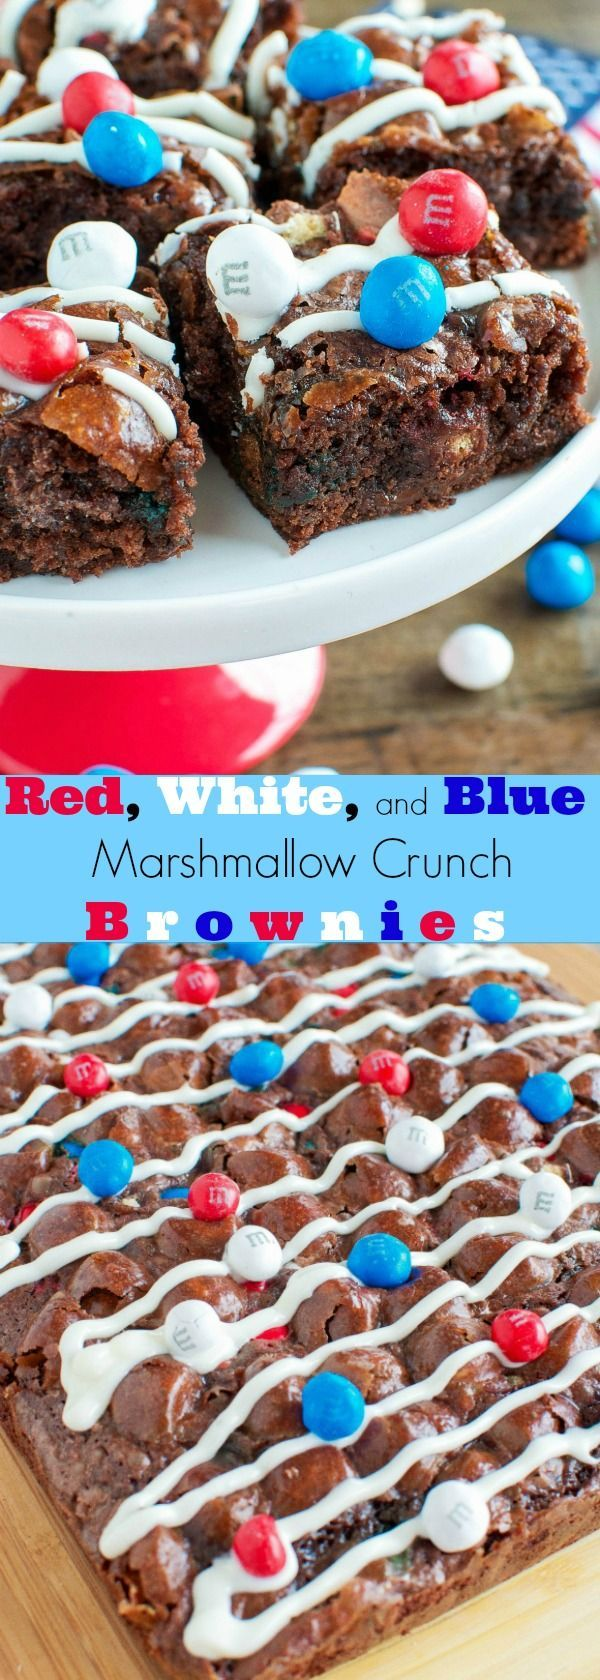 Red, White, and Blue Dessert Idea - Patriotic Marshmallow Crunch Brownies!